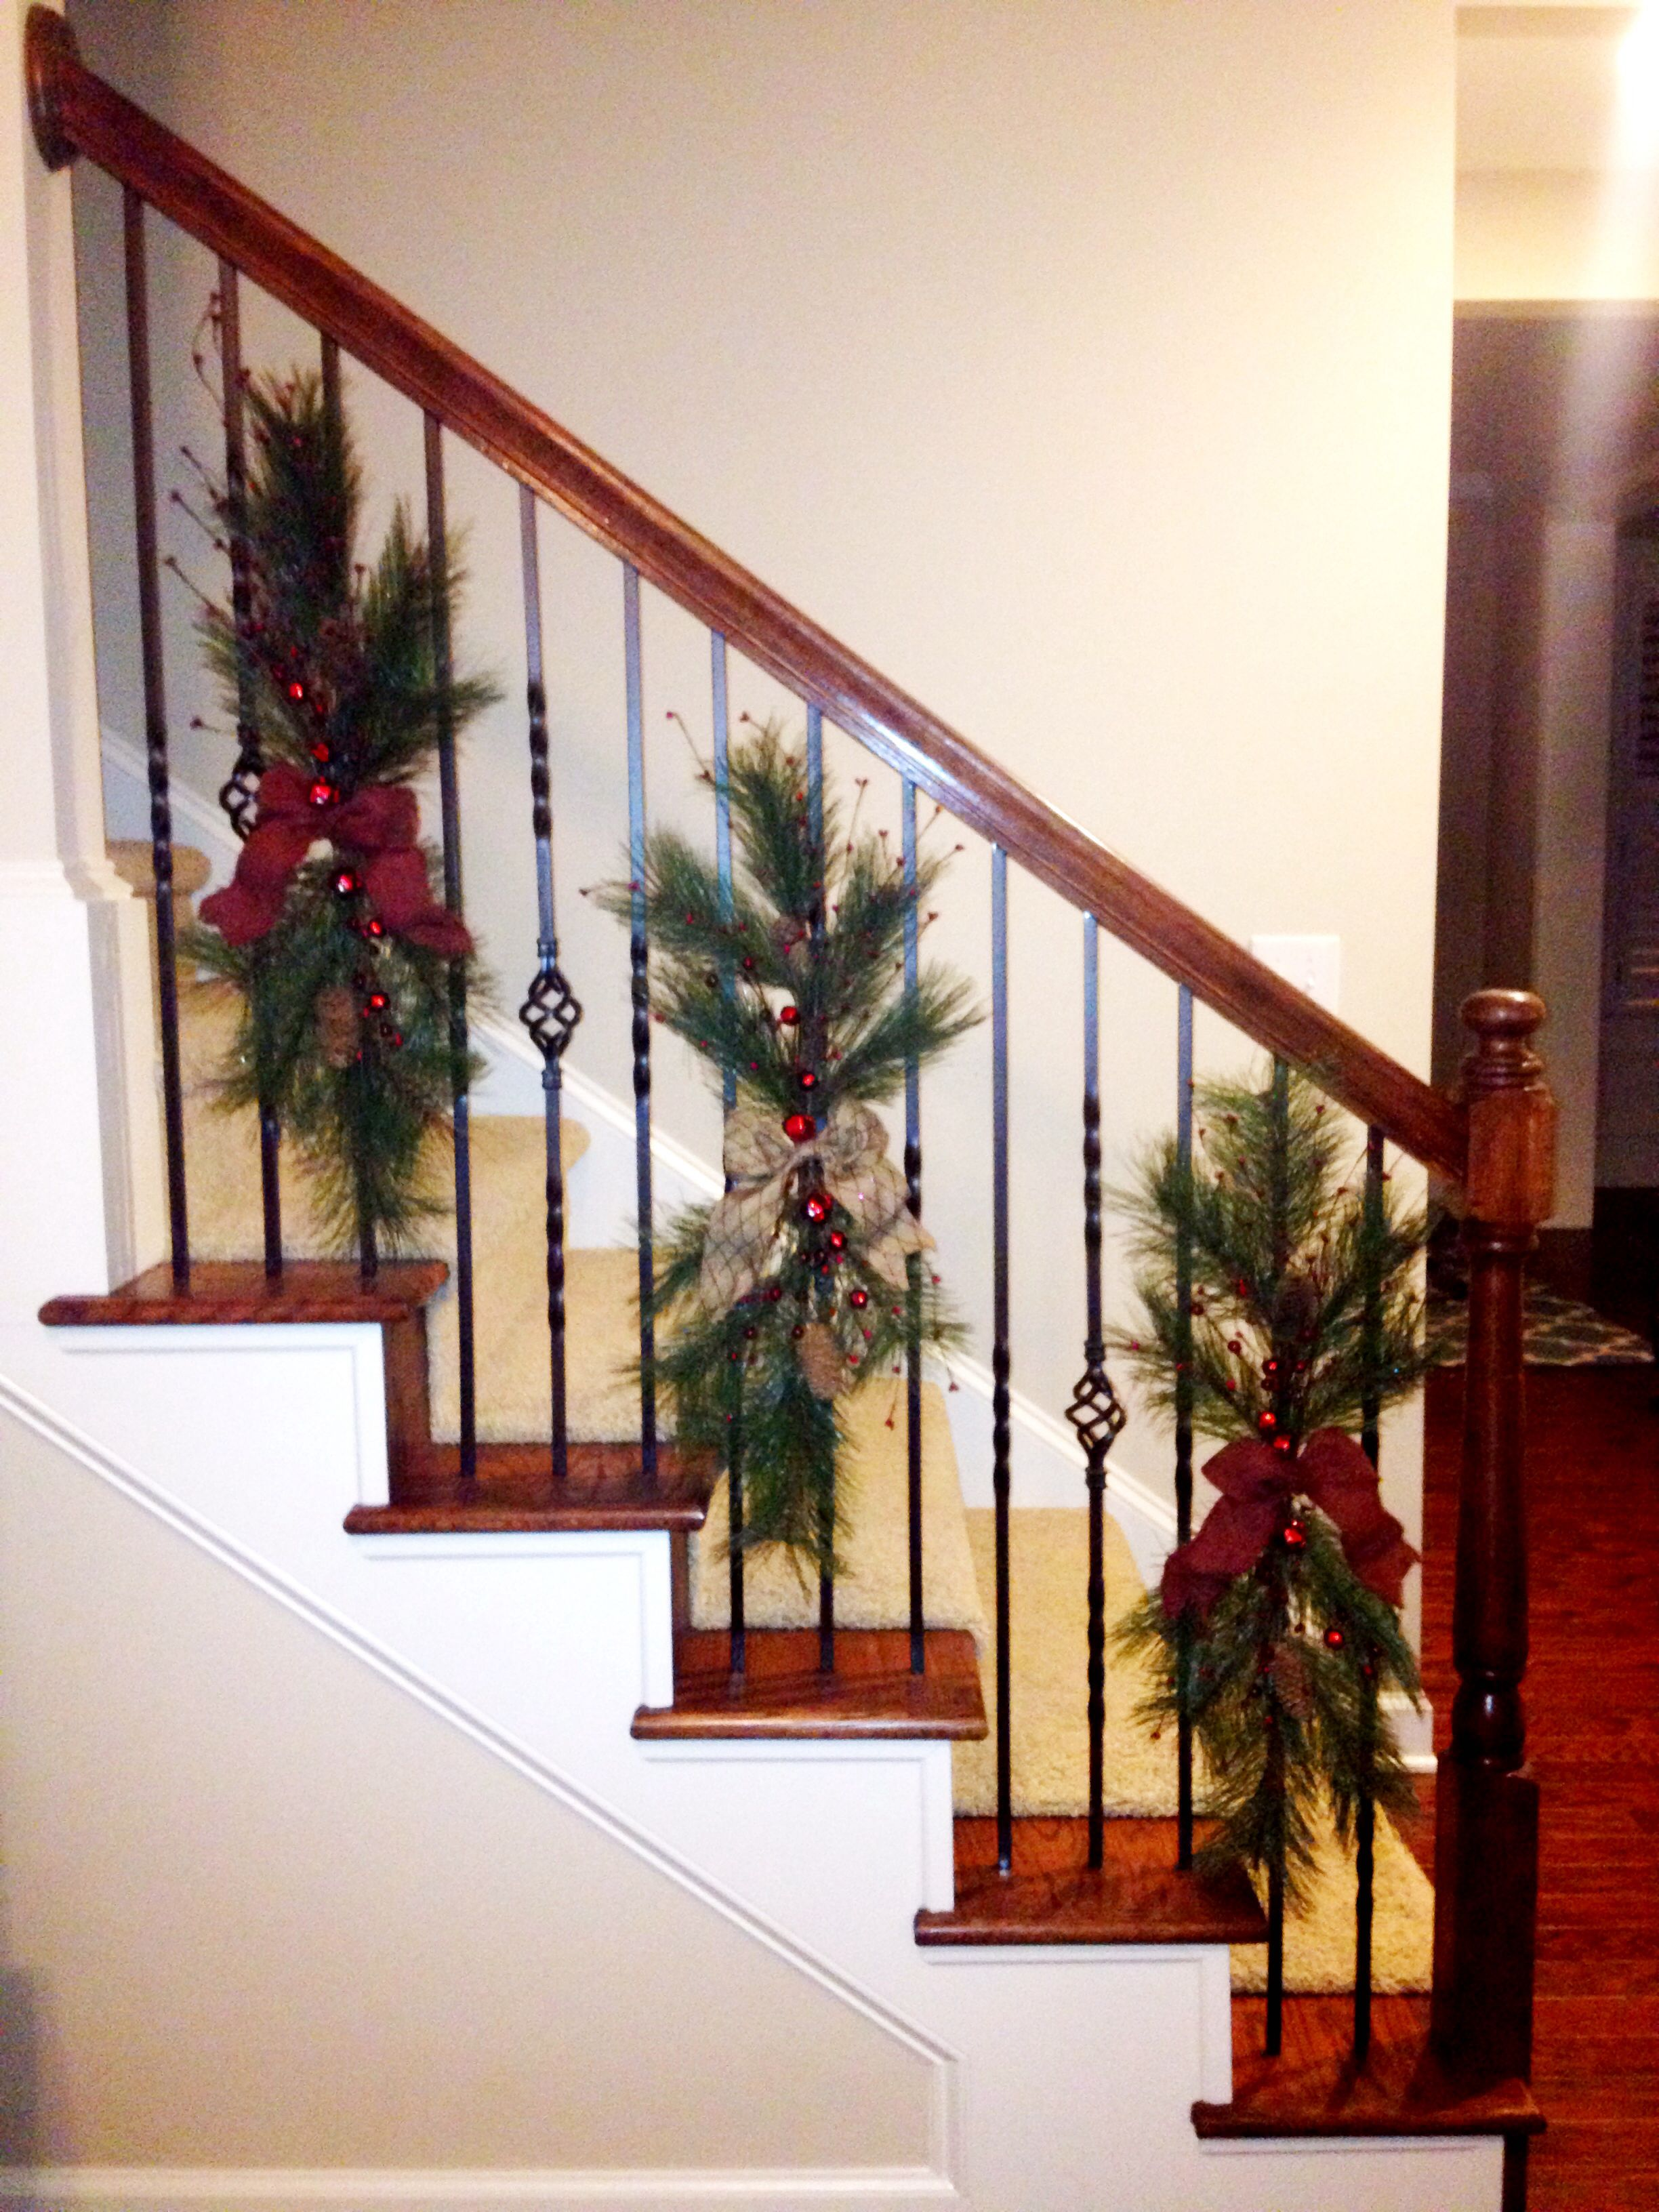 Christmas Swags Tied To Stair Railing Instead Of Wrapping Garland Around The Baniste Christmas Stairs Decorations Christmas Staircase Decor Christmas Staircase